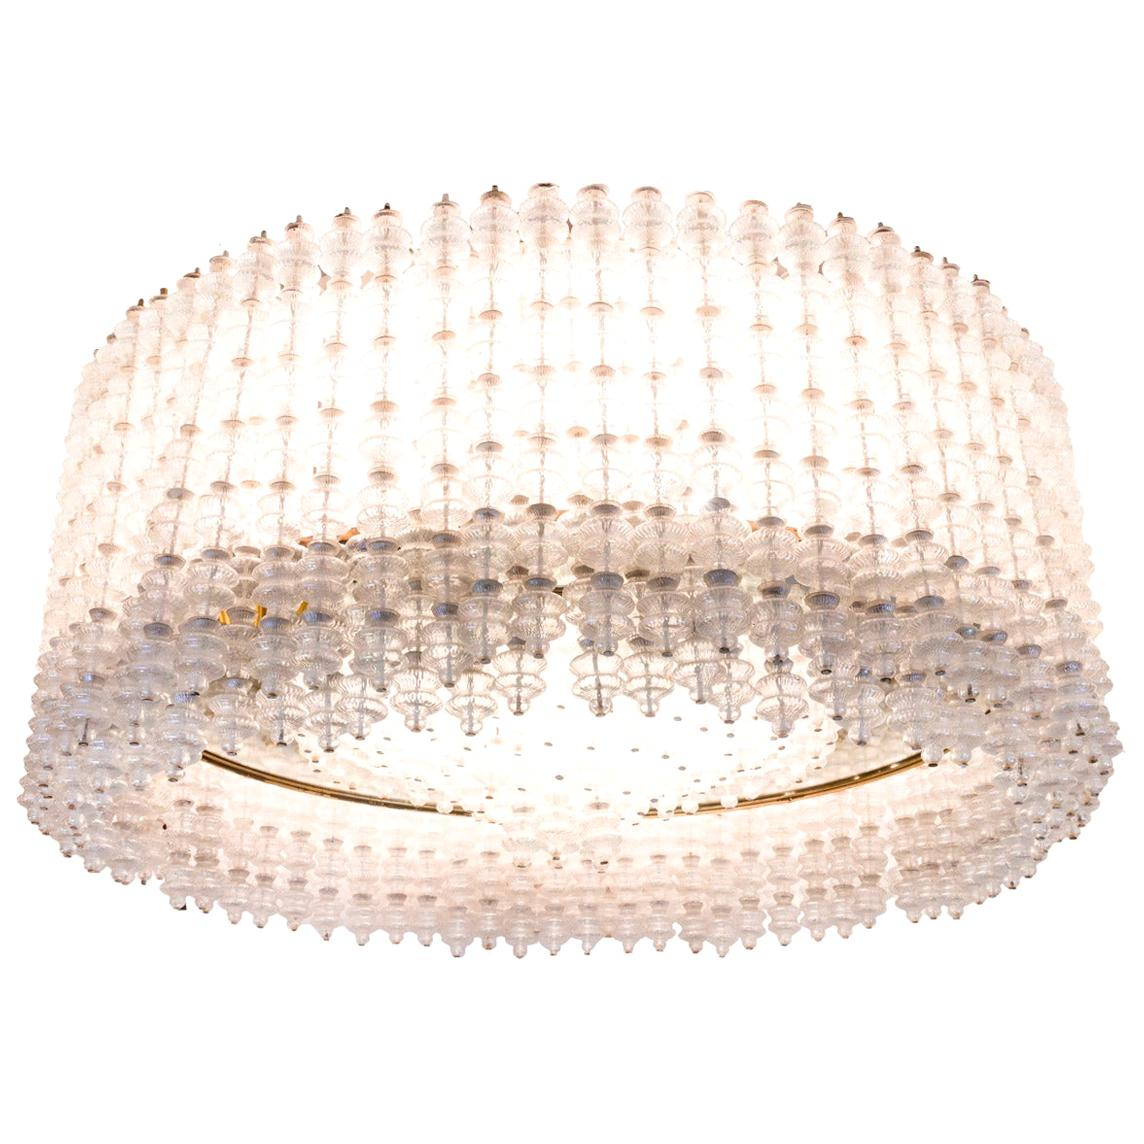 Seguso, Large Chandelier in Murano Glass, 1950s